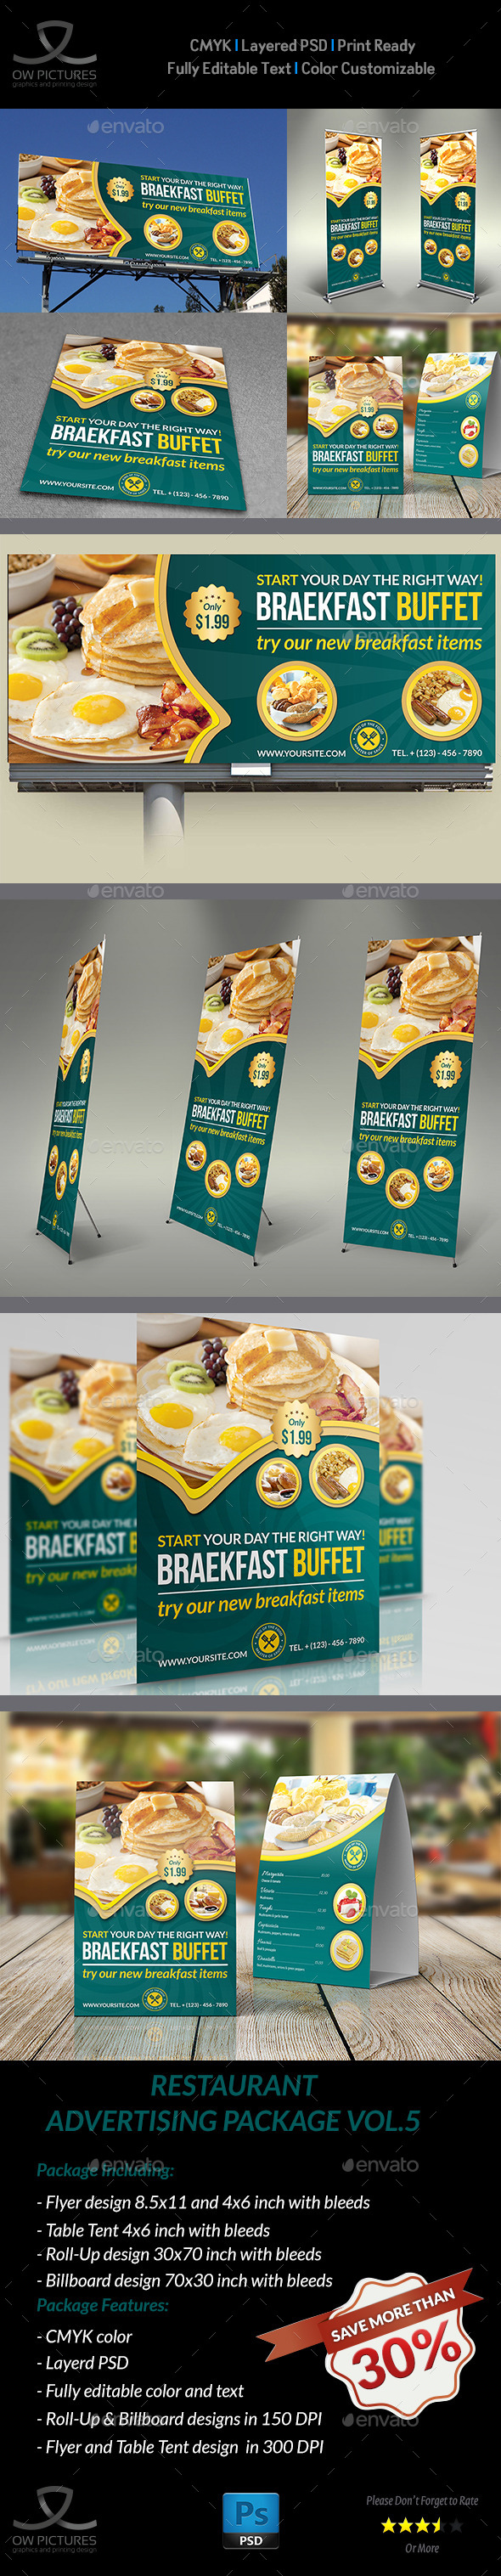 GraphicRiver Restaurant Advertising Bundle Vol.5 11461306